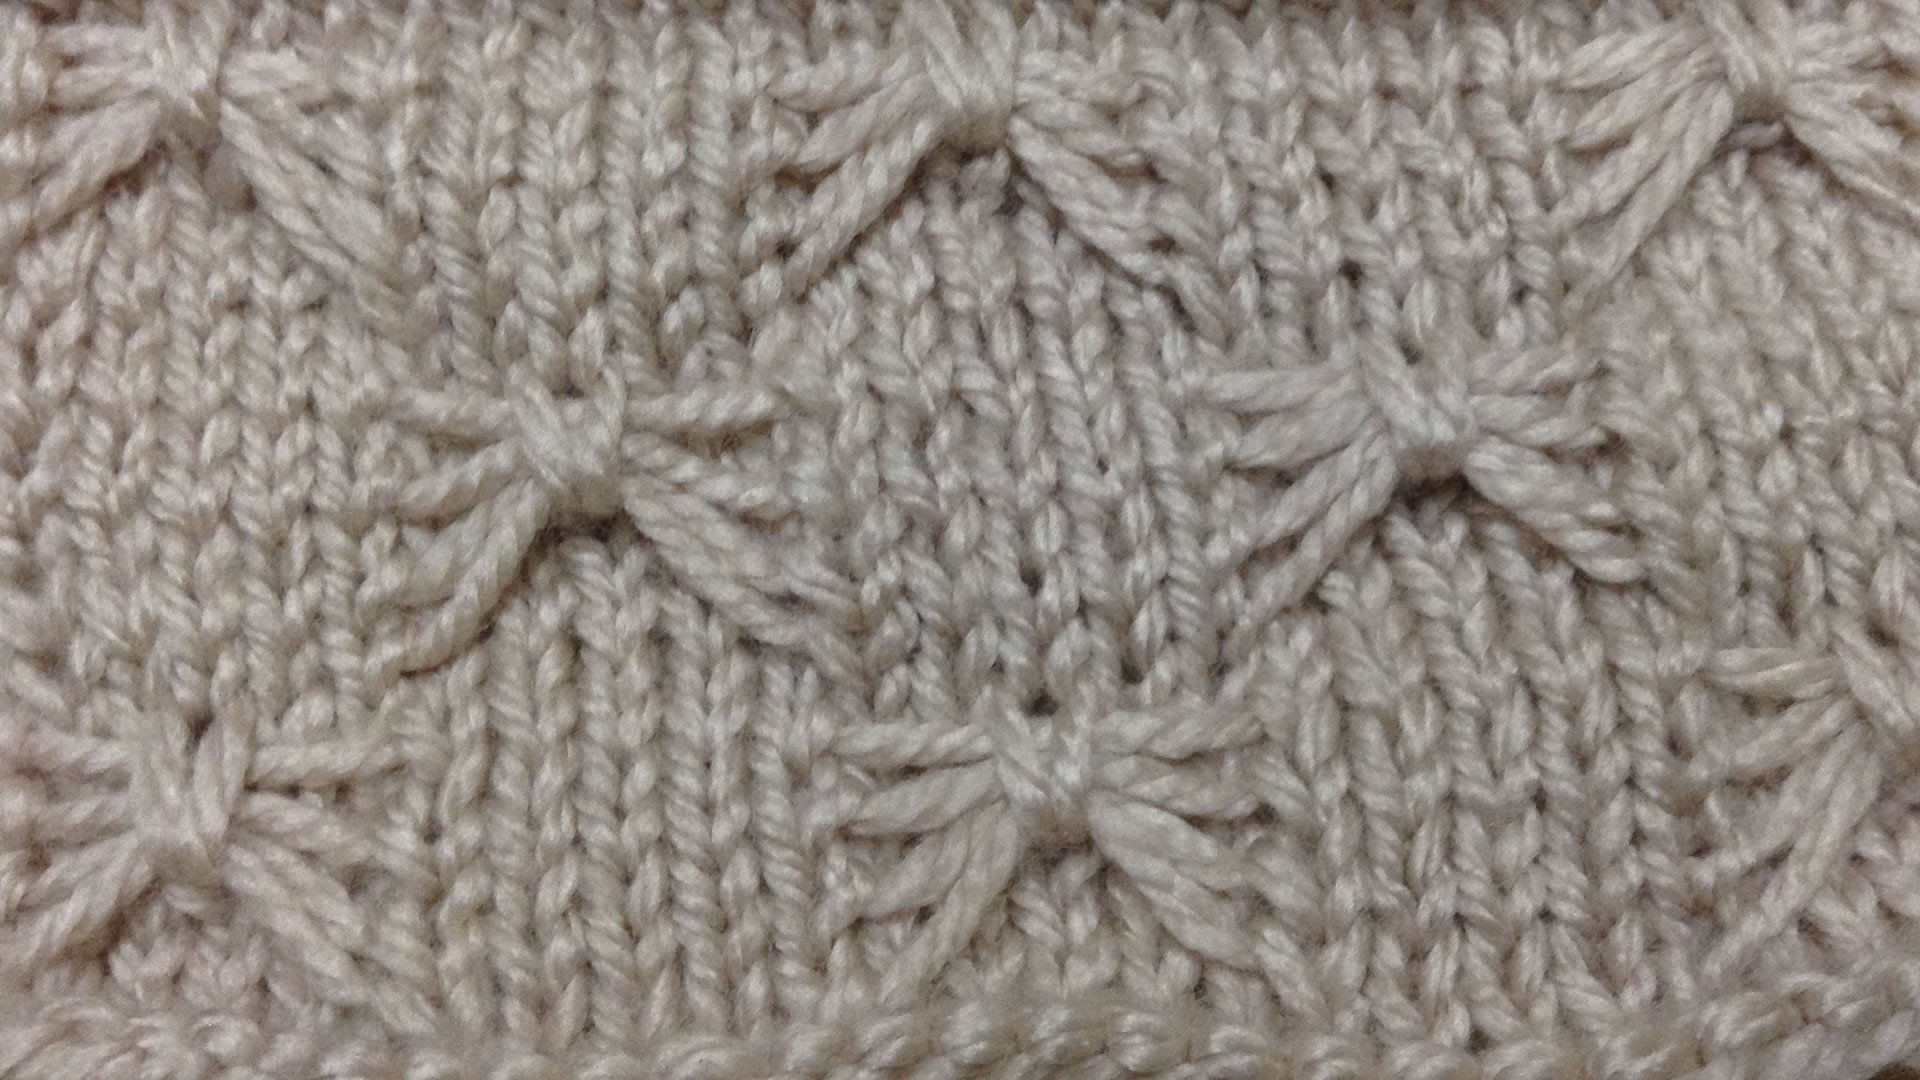 How To Knit Butterfly Stitch Knitting Patterns For Beginners